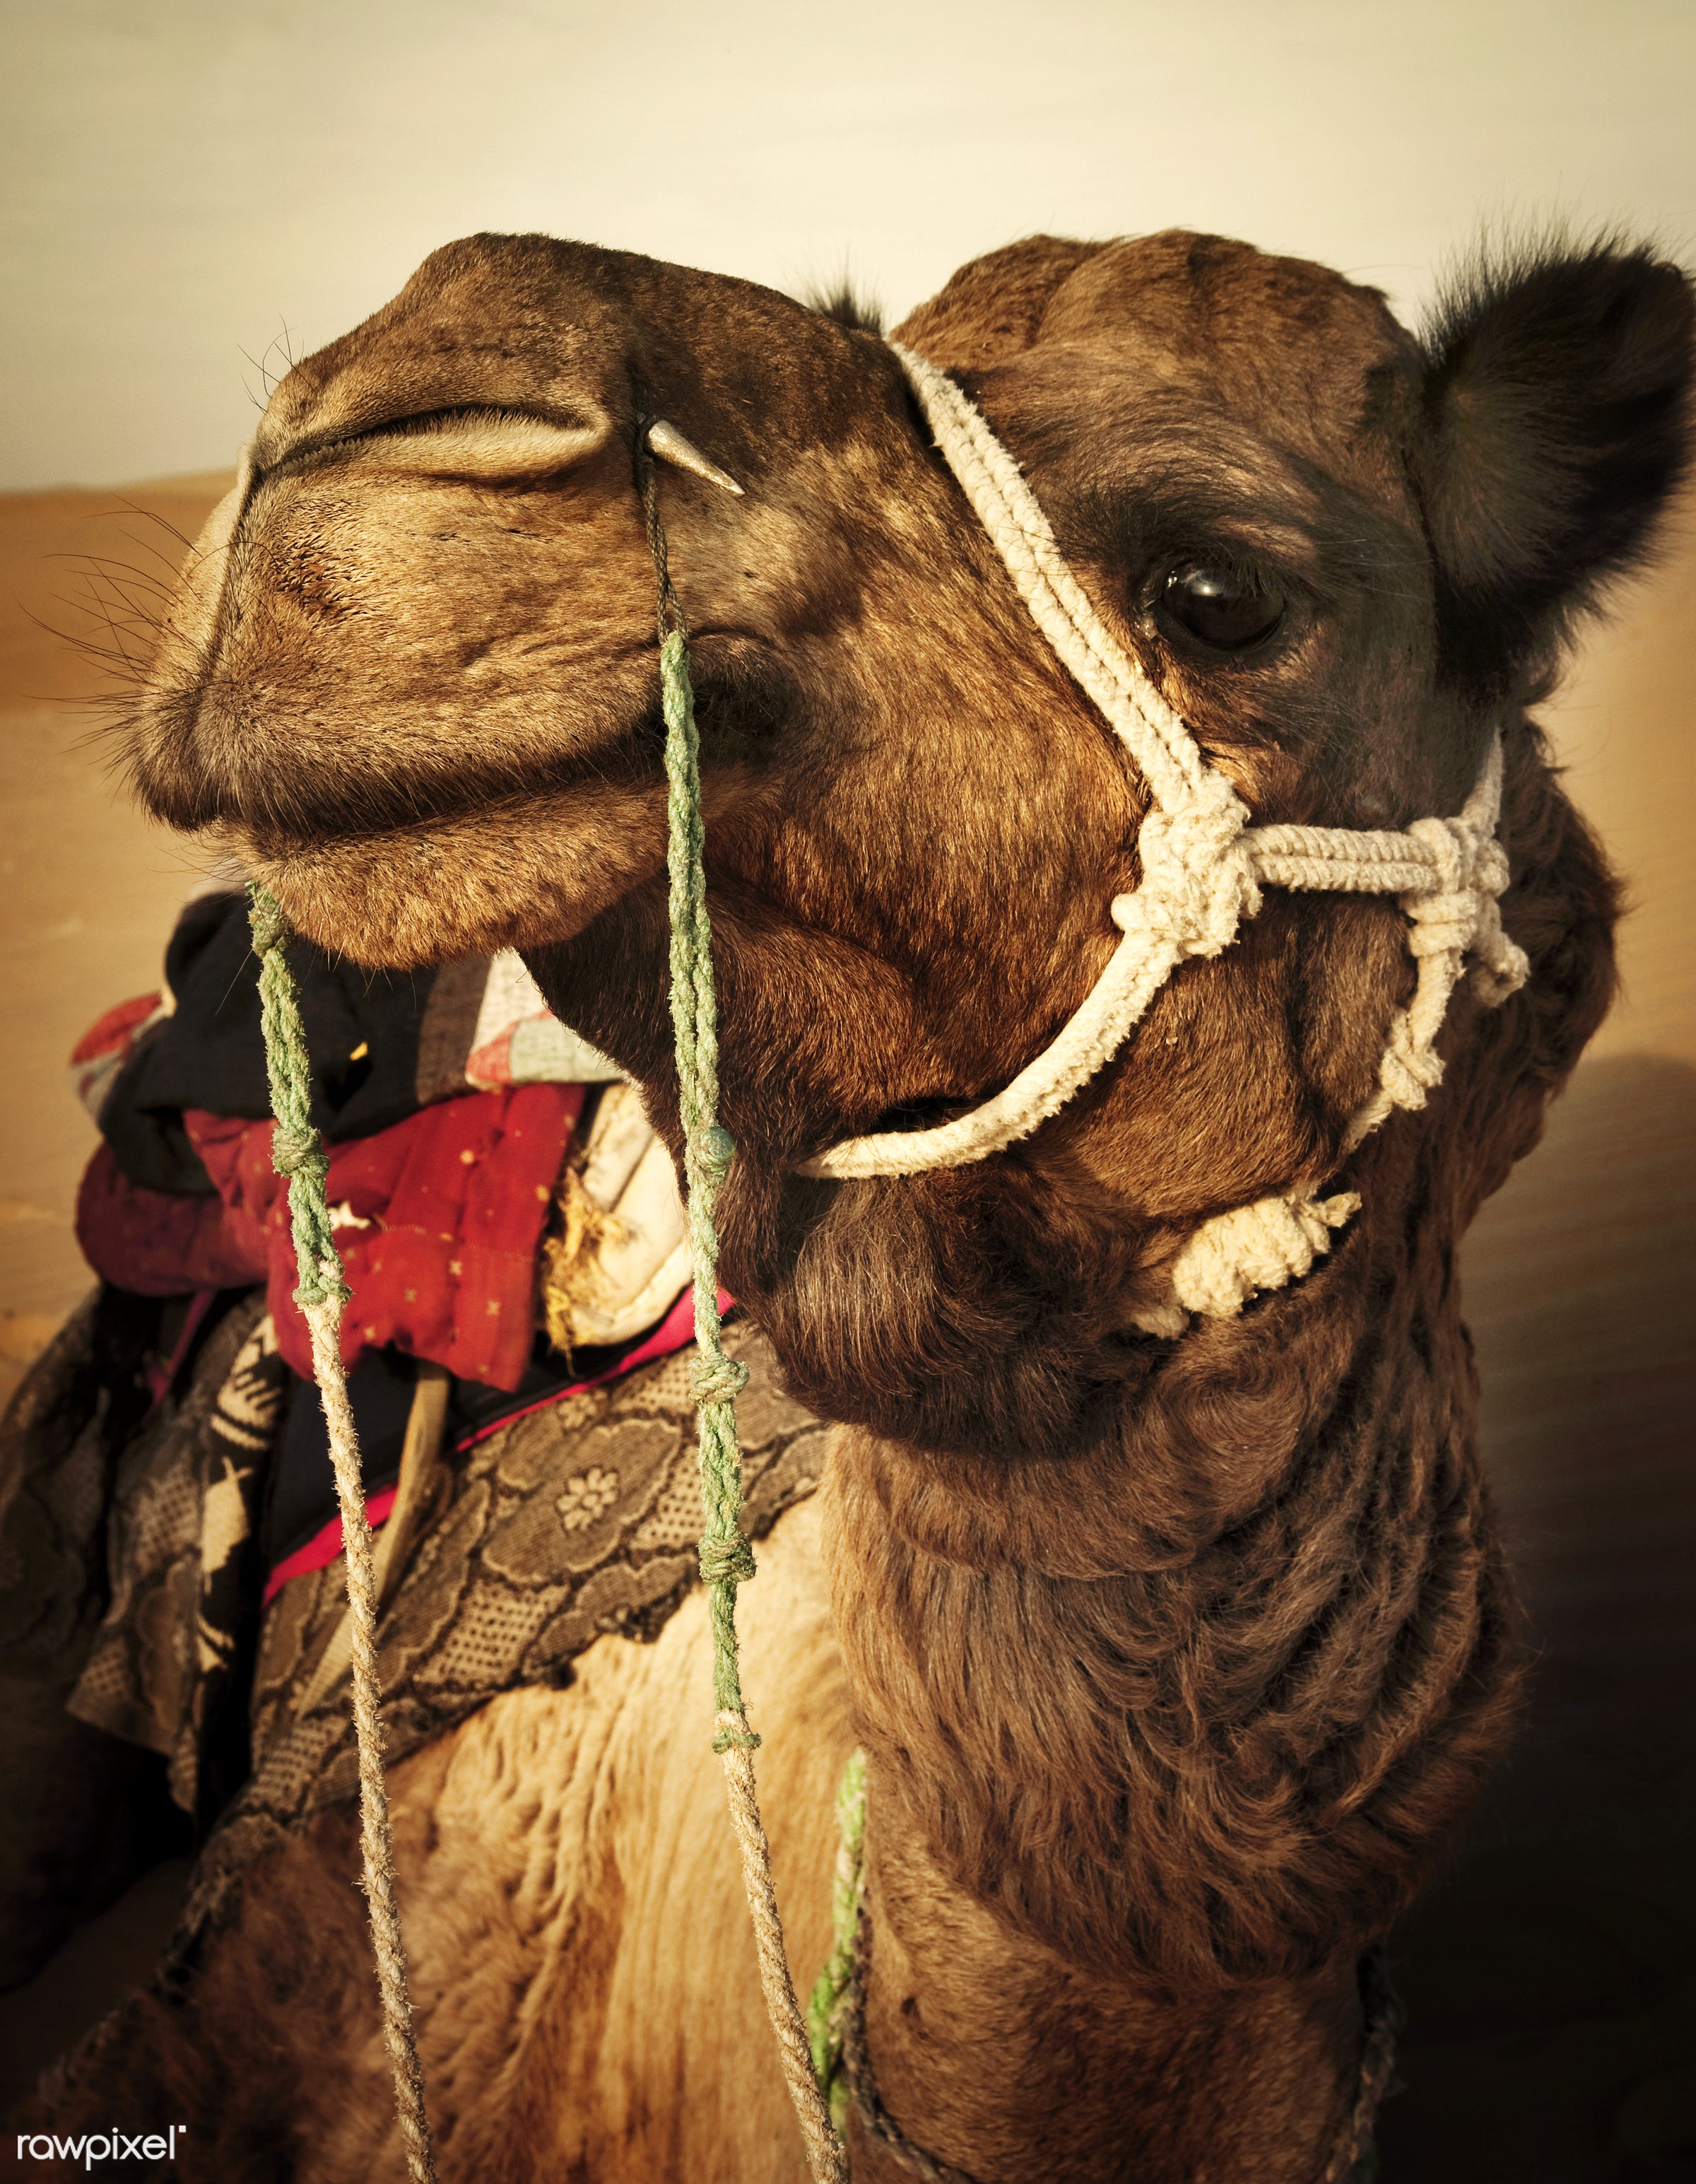 Johnie the Camel in the Thar Desert, Rajasthan, India - ancient, animal, animal themes, arabia, camel, carved letters,...